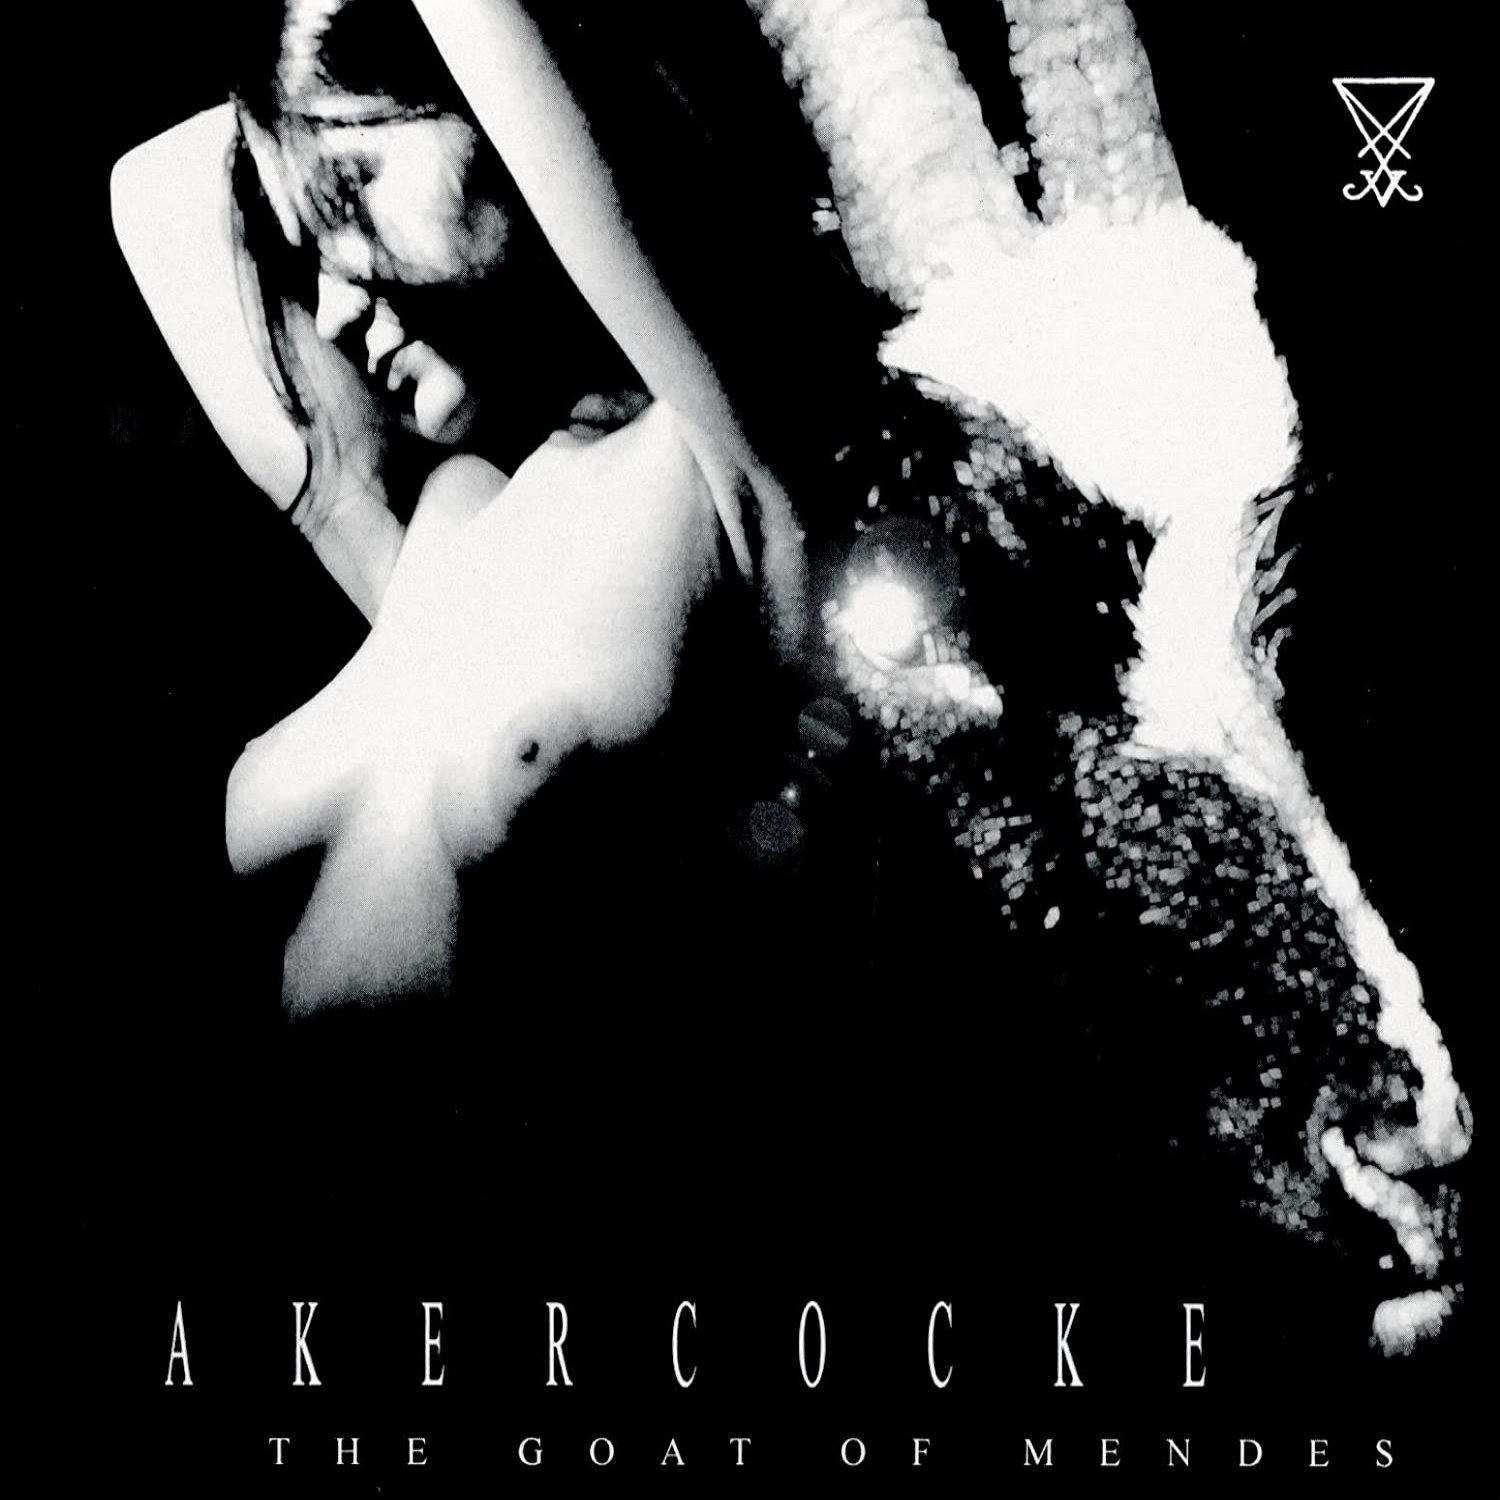 Review for Akercocke - The Goat of Mendes